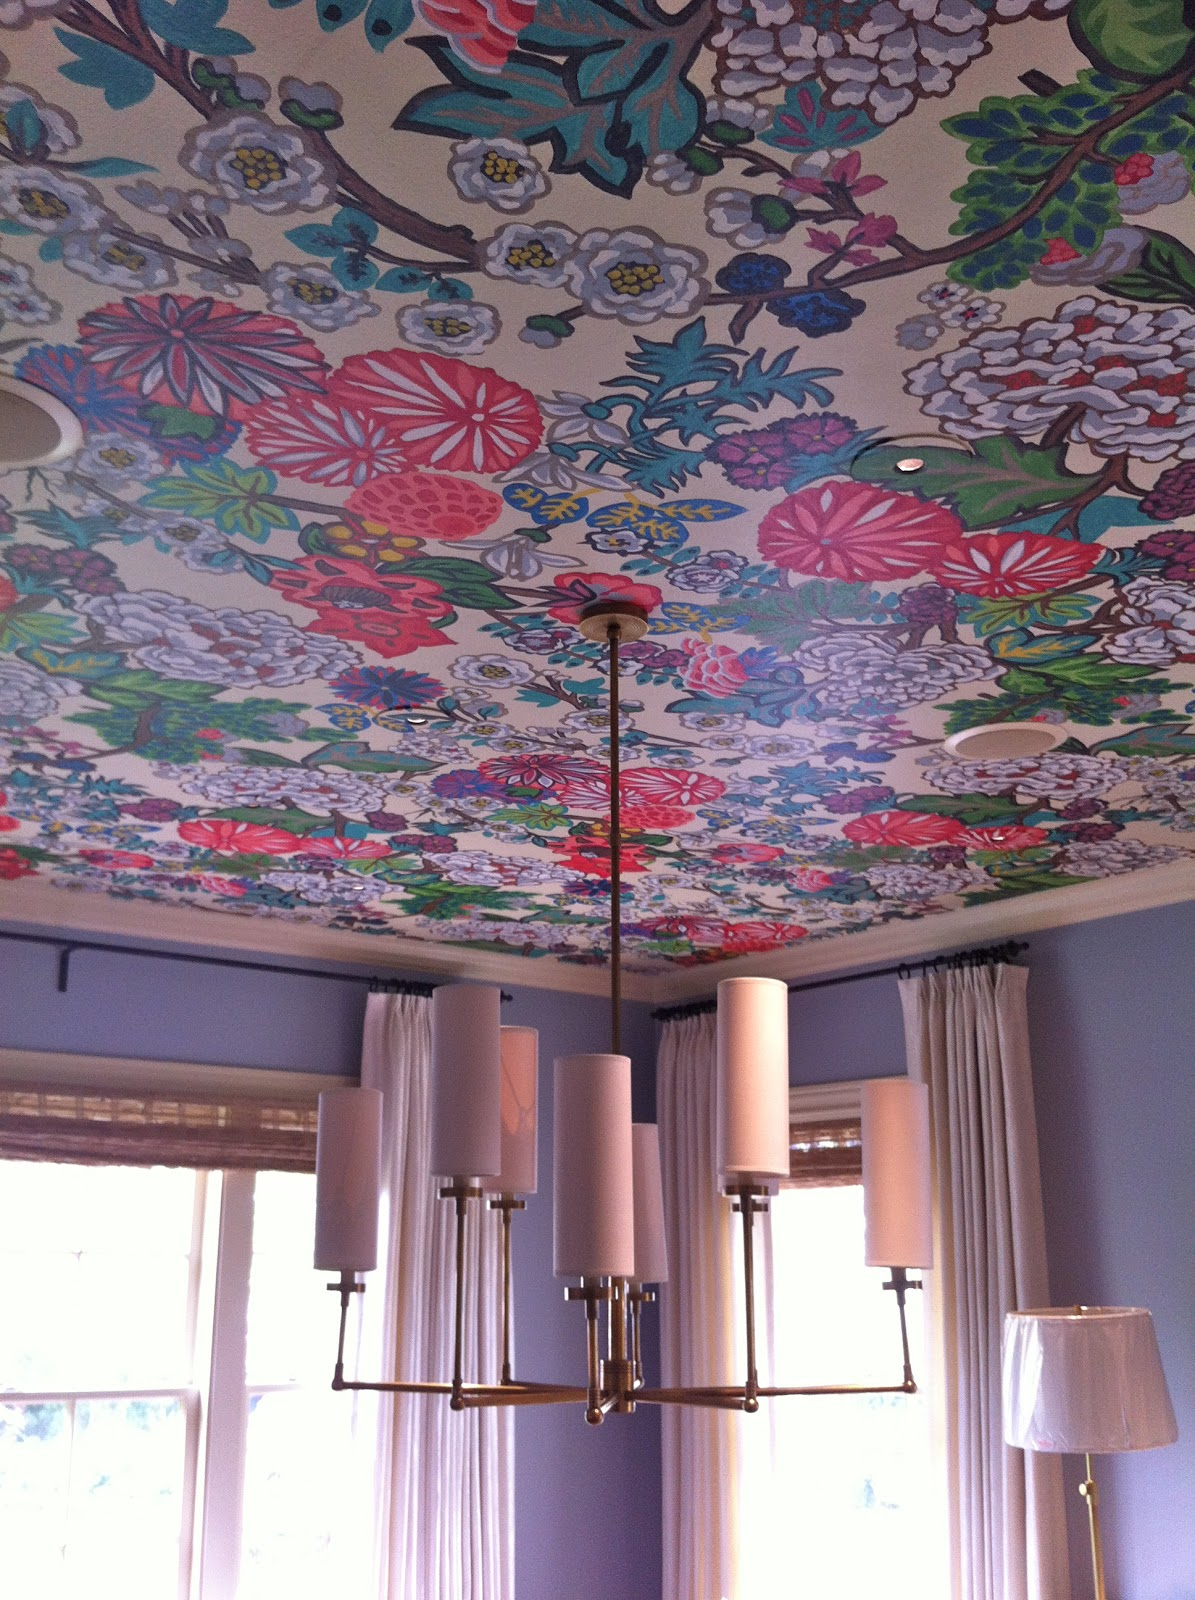 Vivid Hue Home Ceilings Why Put A 'lid' On Them?